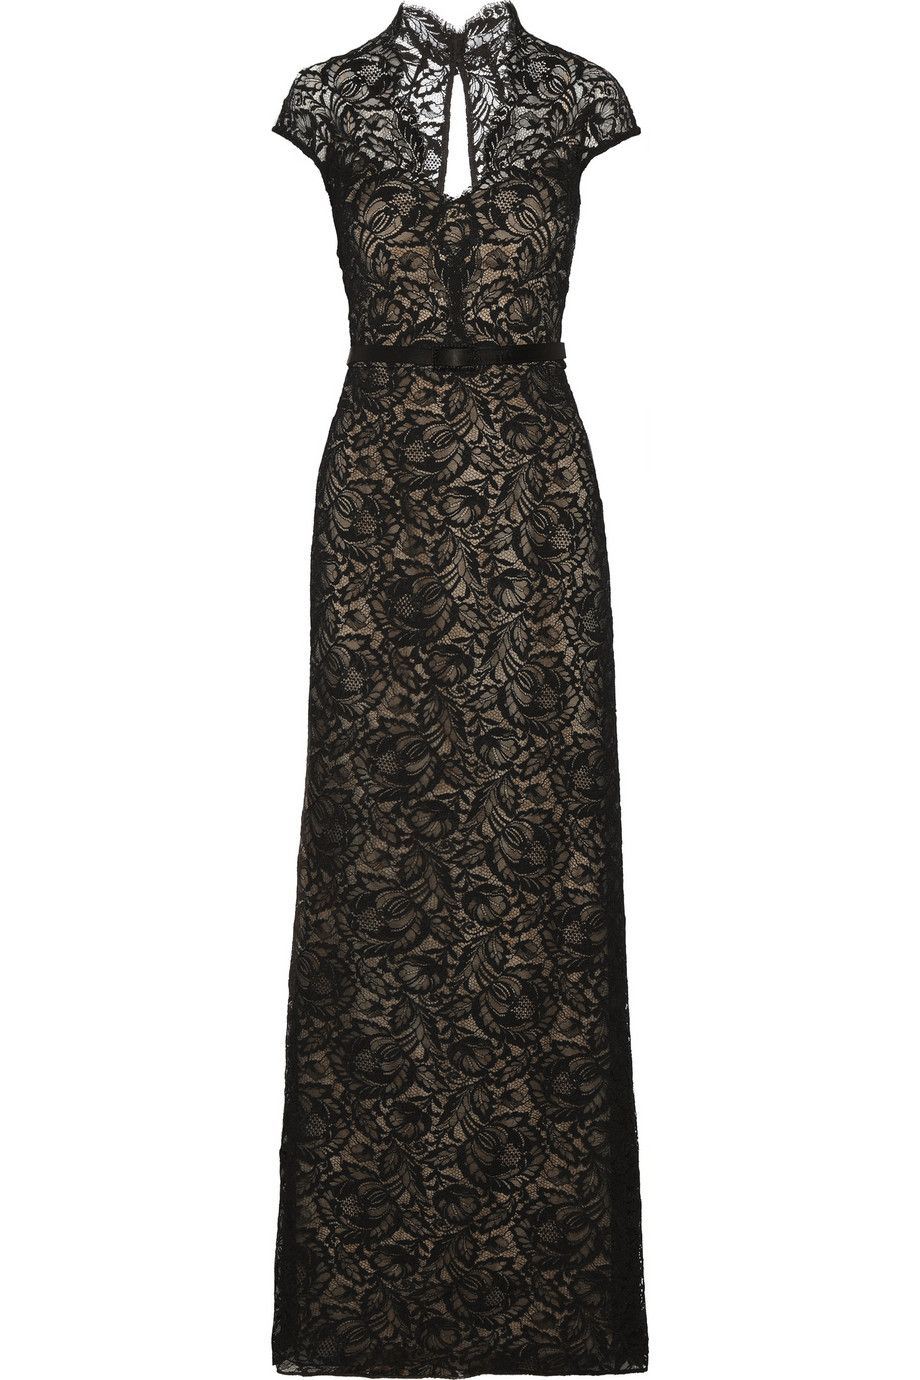 Mikael aghalbelted lace gownfront shopping pinterest designer